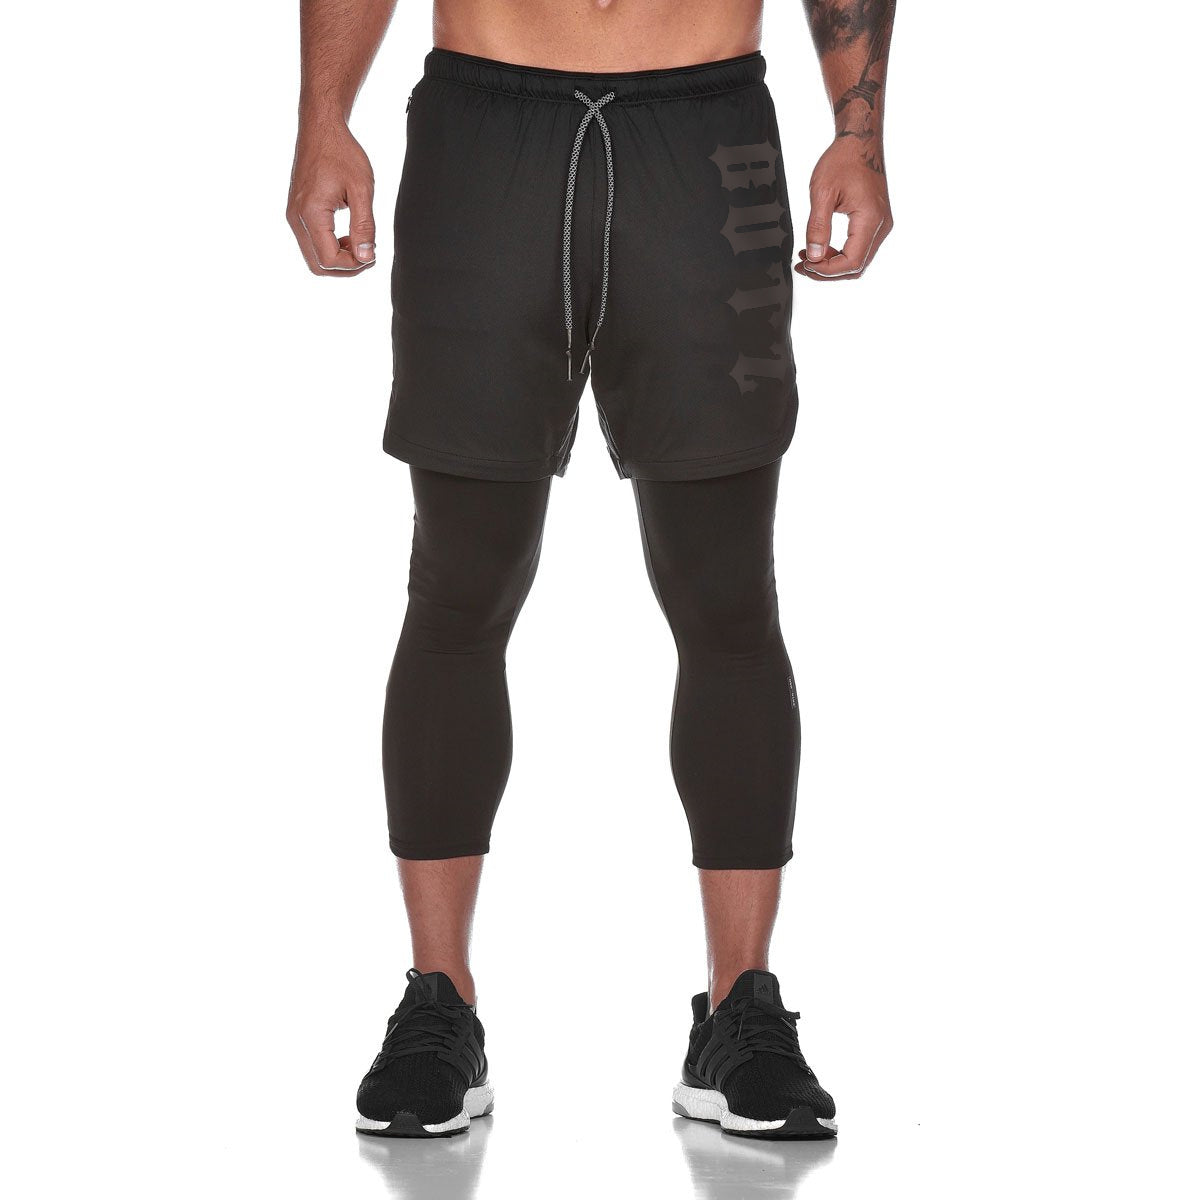 Men's Qualifier Speedpocket 3/4 Tights + Shorts - (Black)